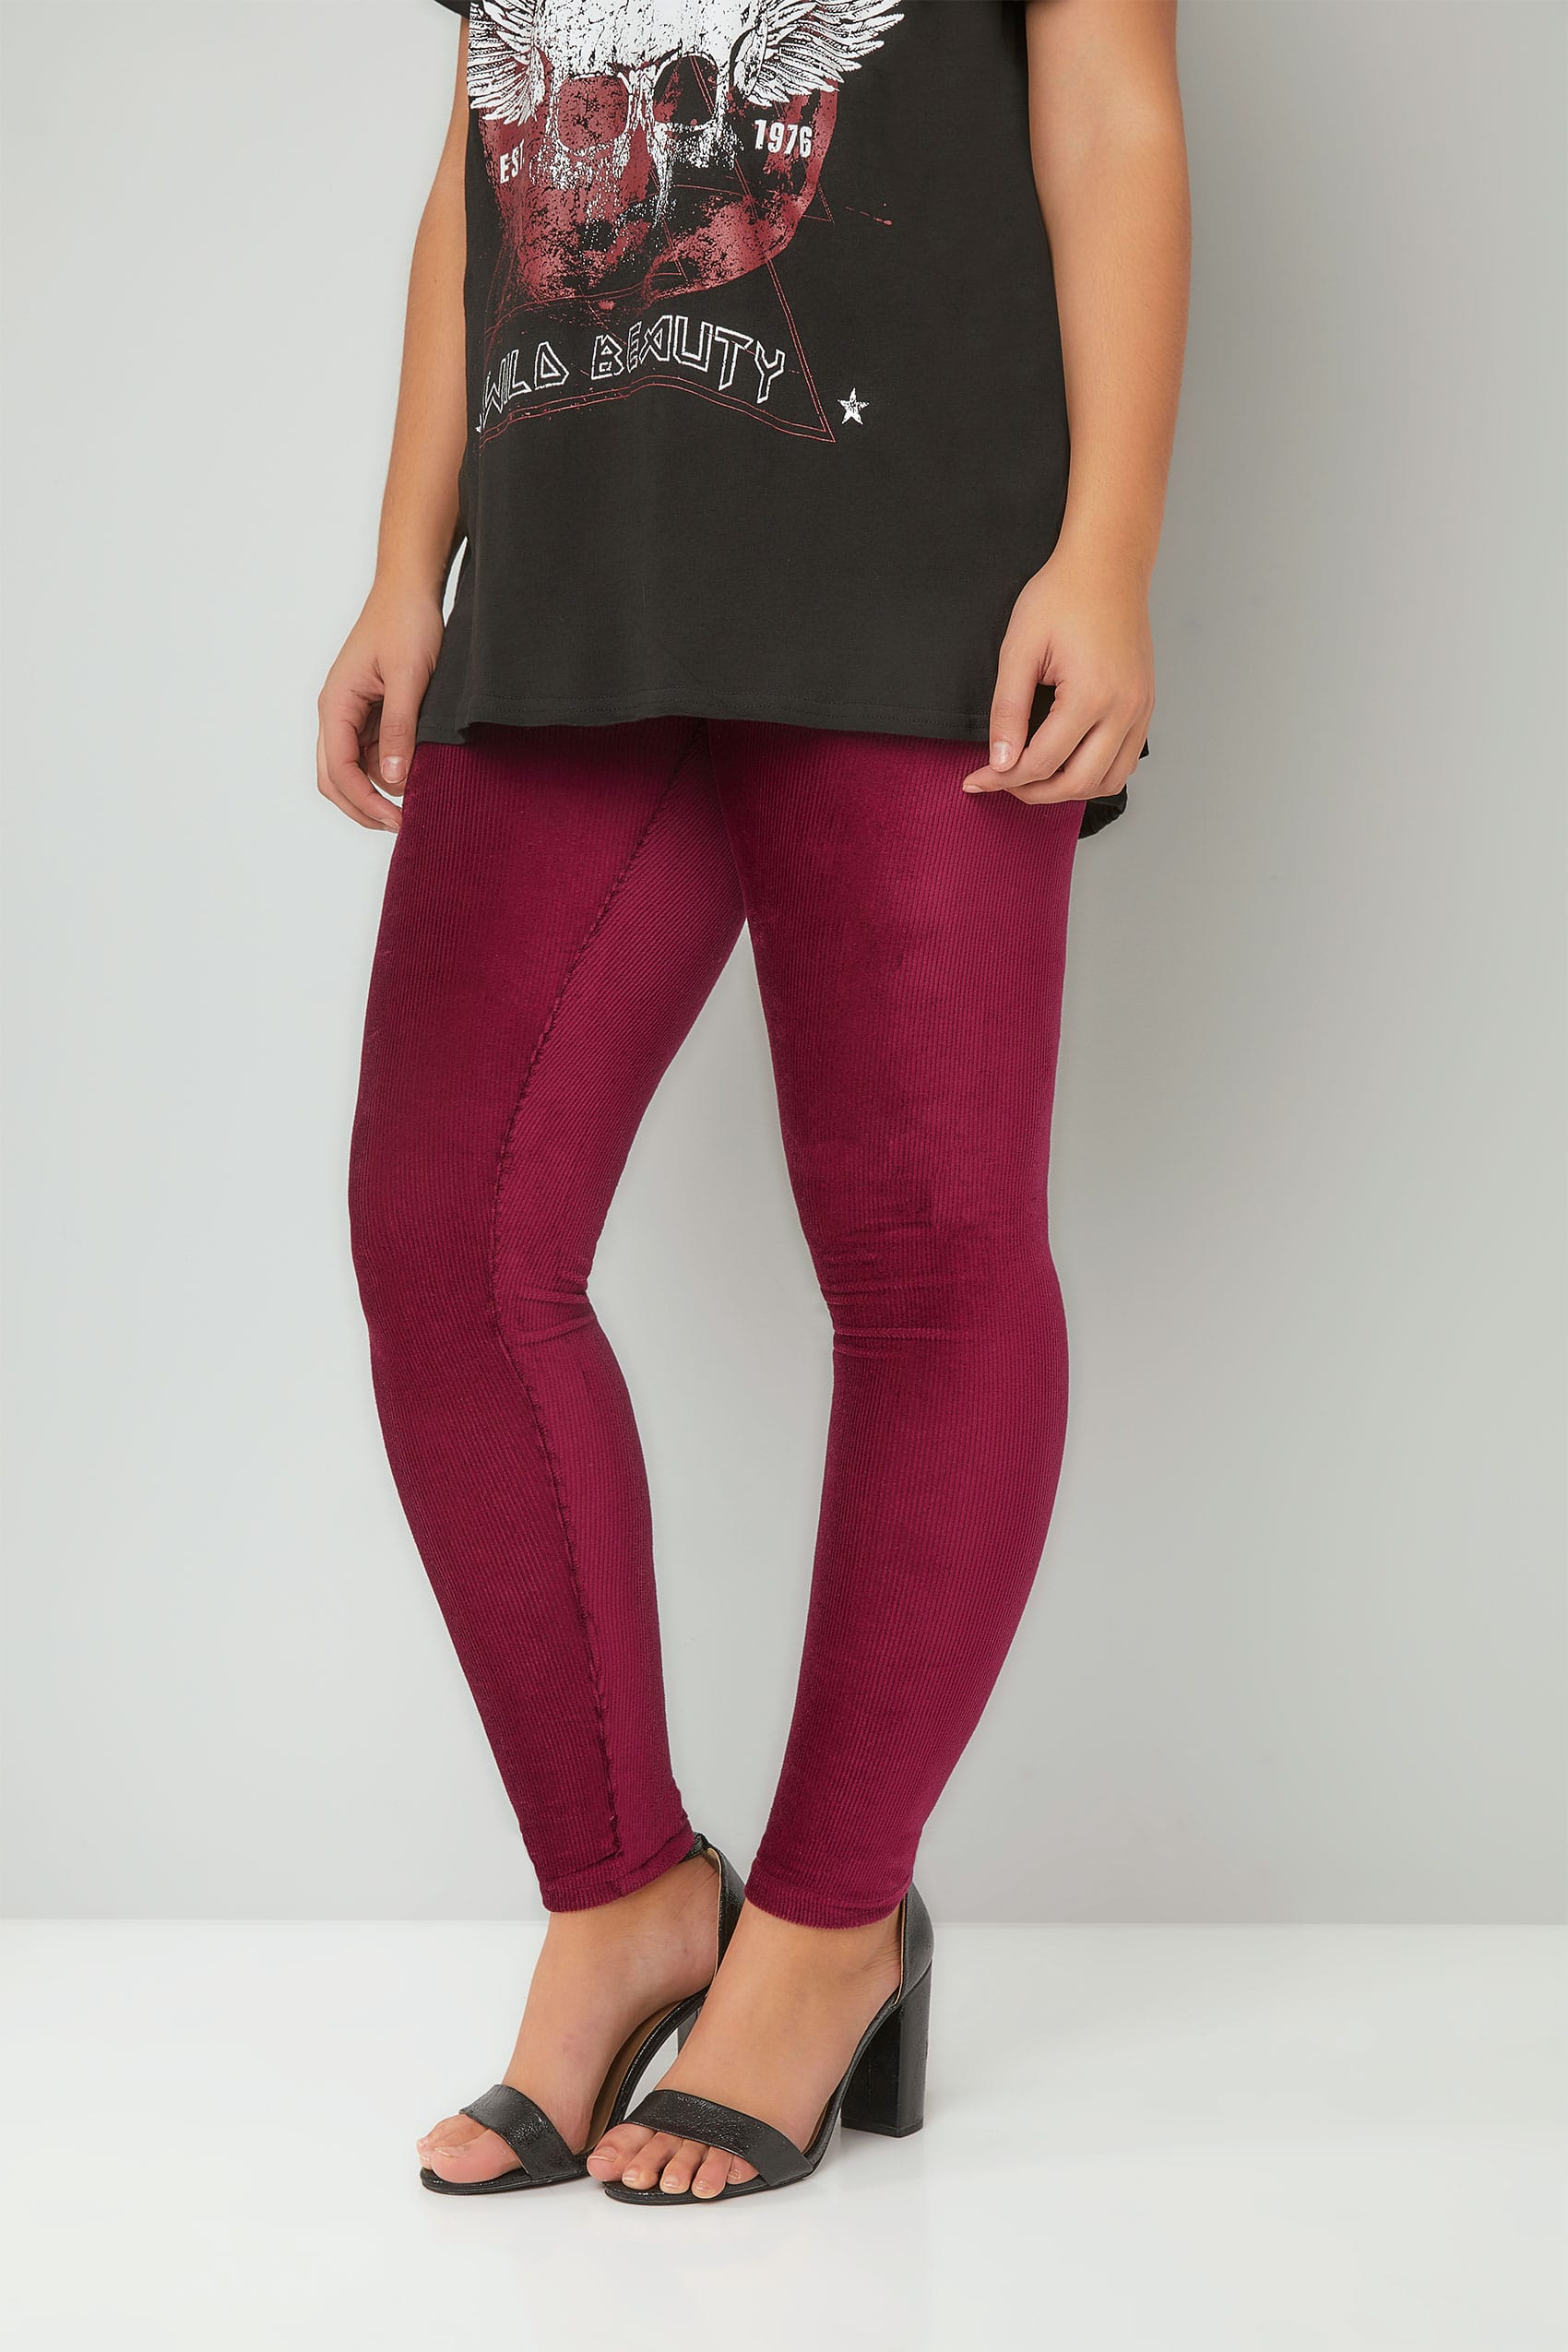 leggings en velour couleur burgundy taille 44 64. Black Bedroom Furniture Sets. Home Design Ideas